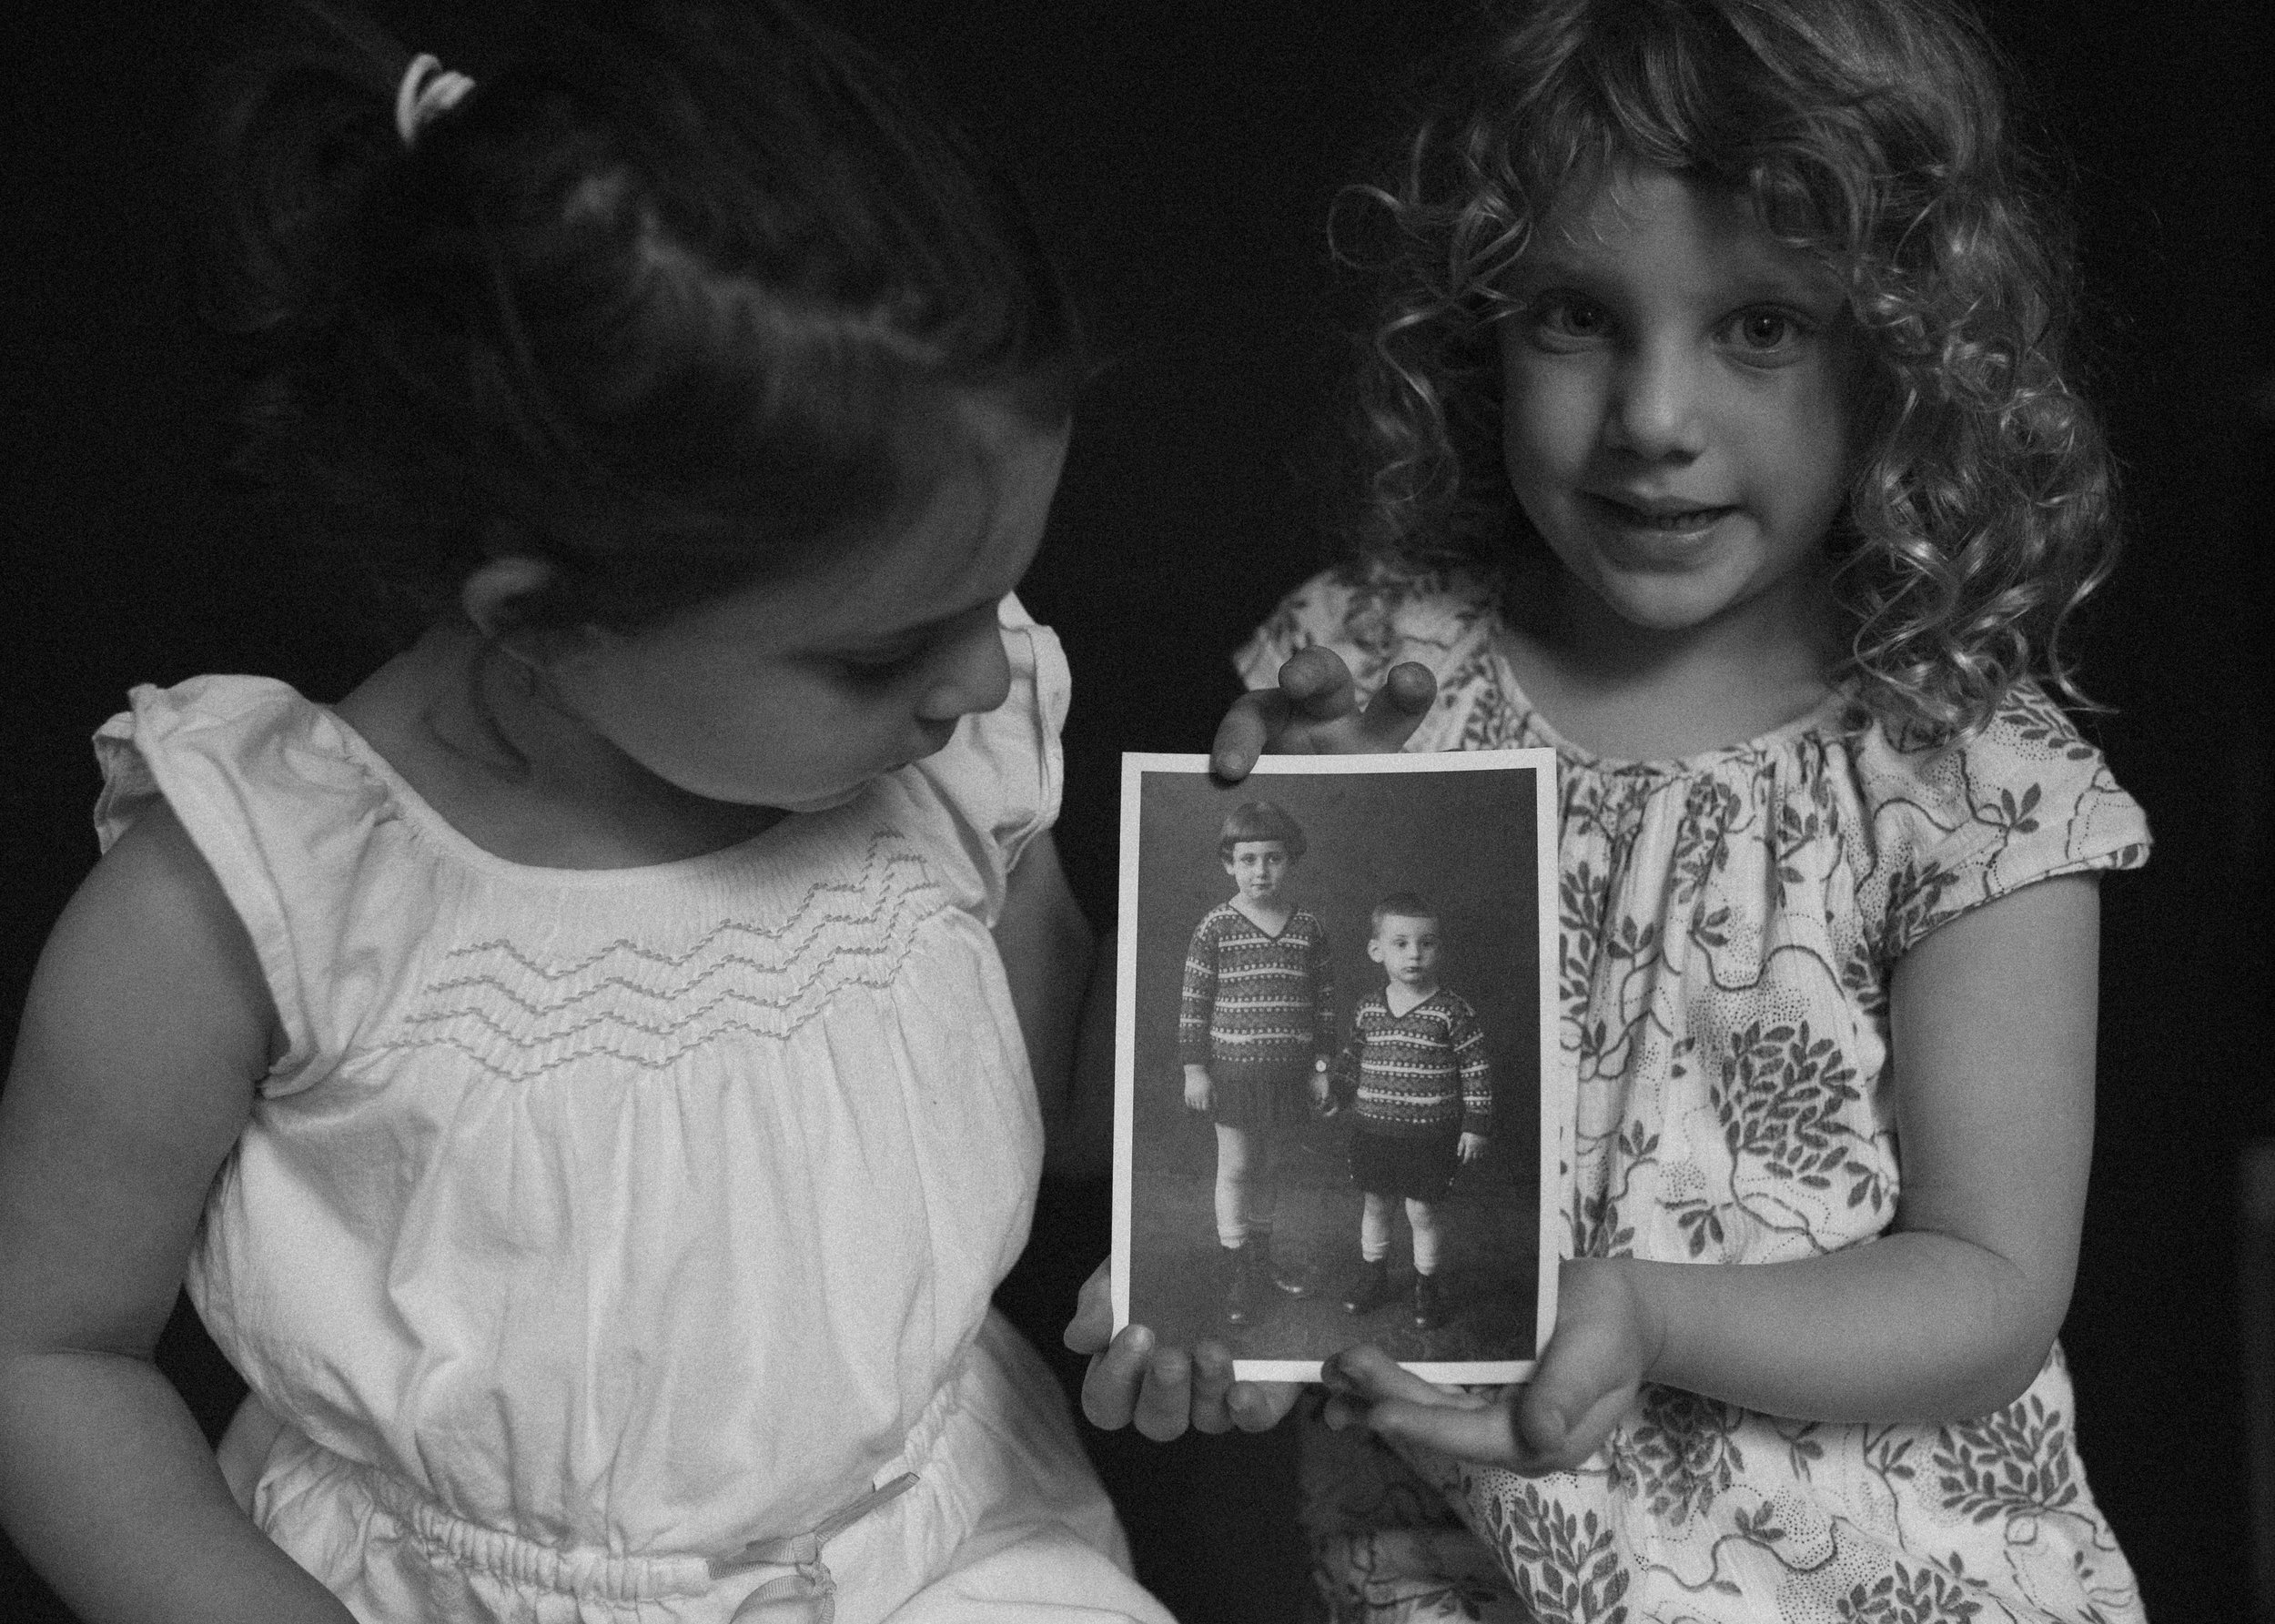 Naomi and Clara hold a picture of Ulrich and Gerda.